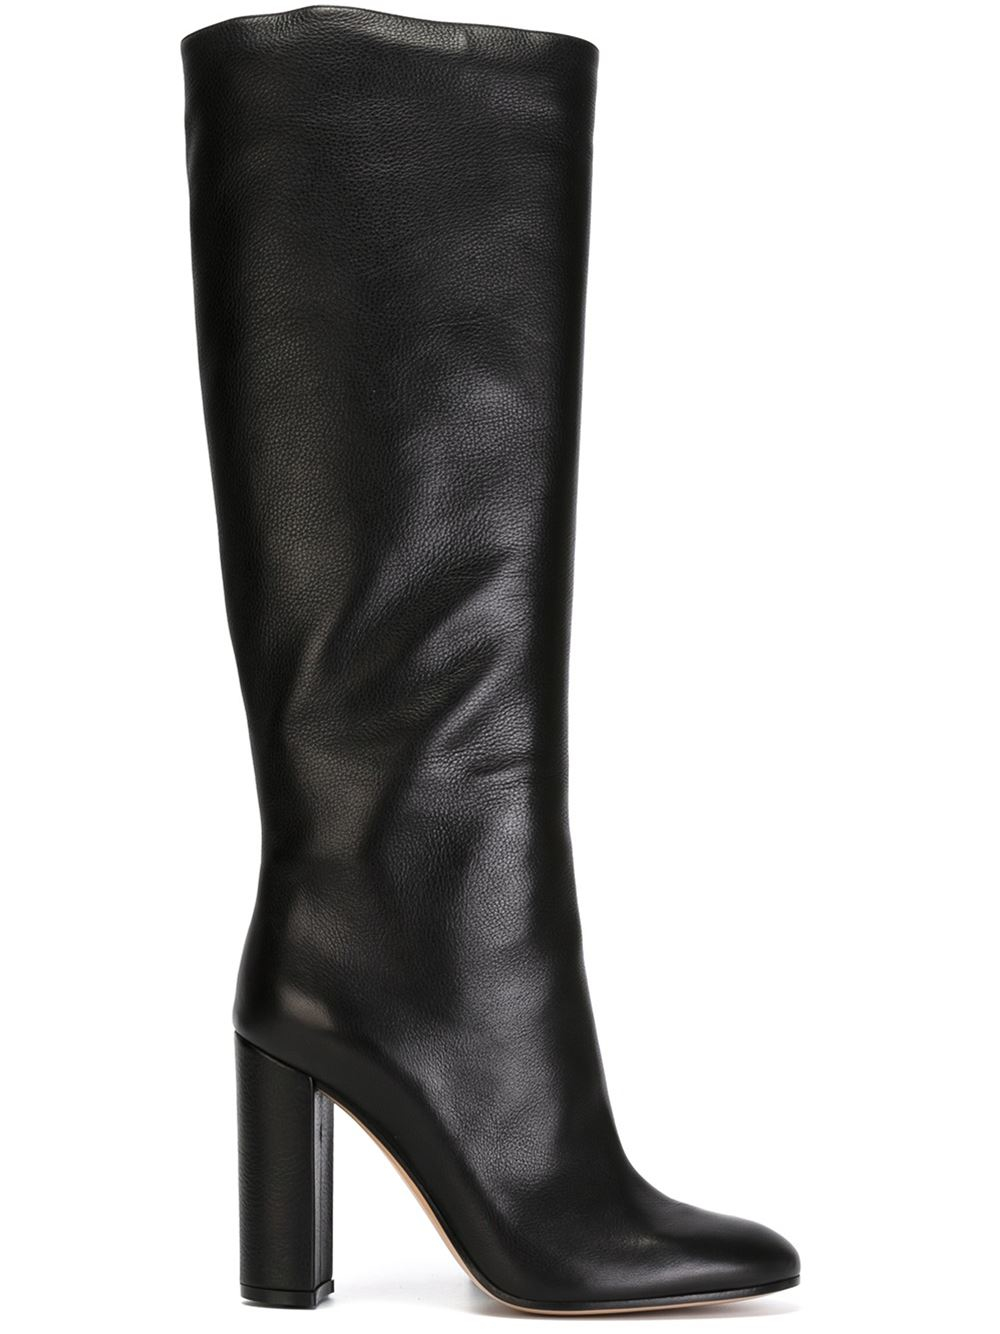 gianvito rossi 39 rolling 39 boots in black lyst. Black Bedroom Furniture Sets. Home Design Ideas